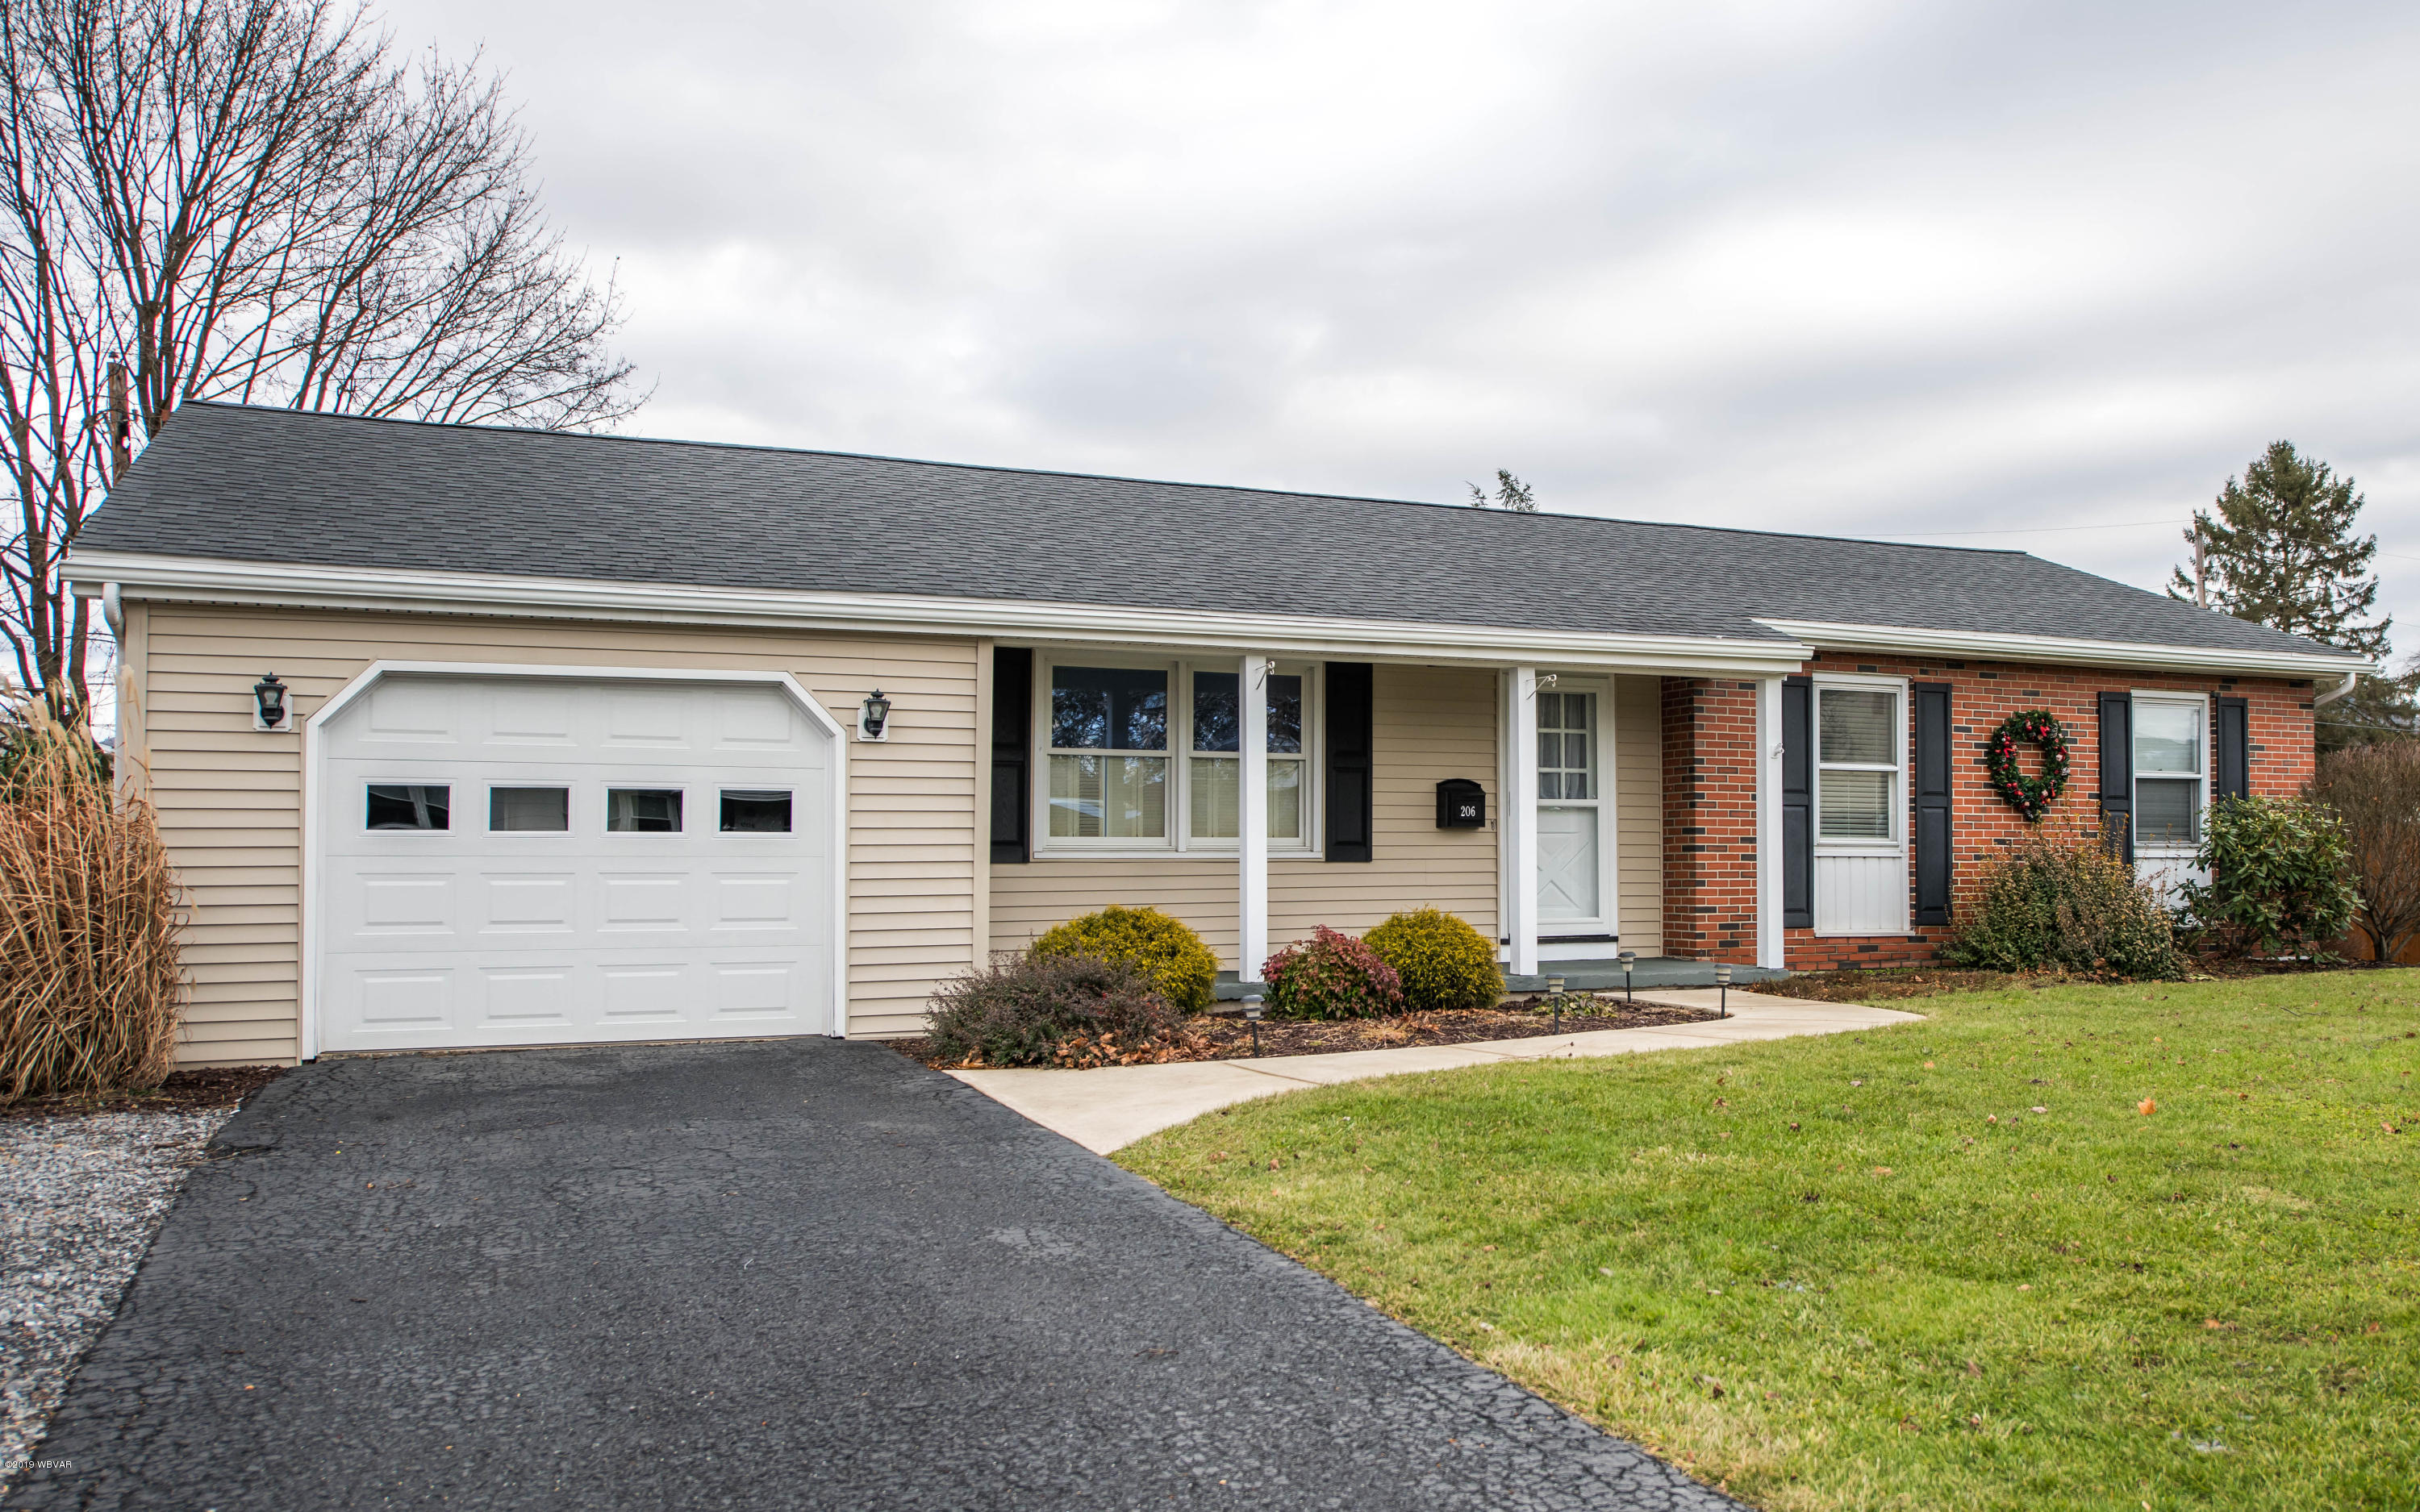 206 CEDAR LANE,Mill Hall,PA 17751,3 Bedrooms Bedrooms,1 BathroomBathrooms,Residential,CEDAR,WB-86149